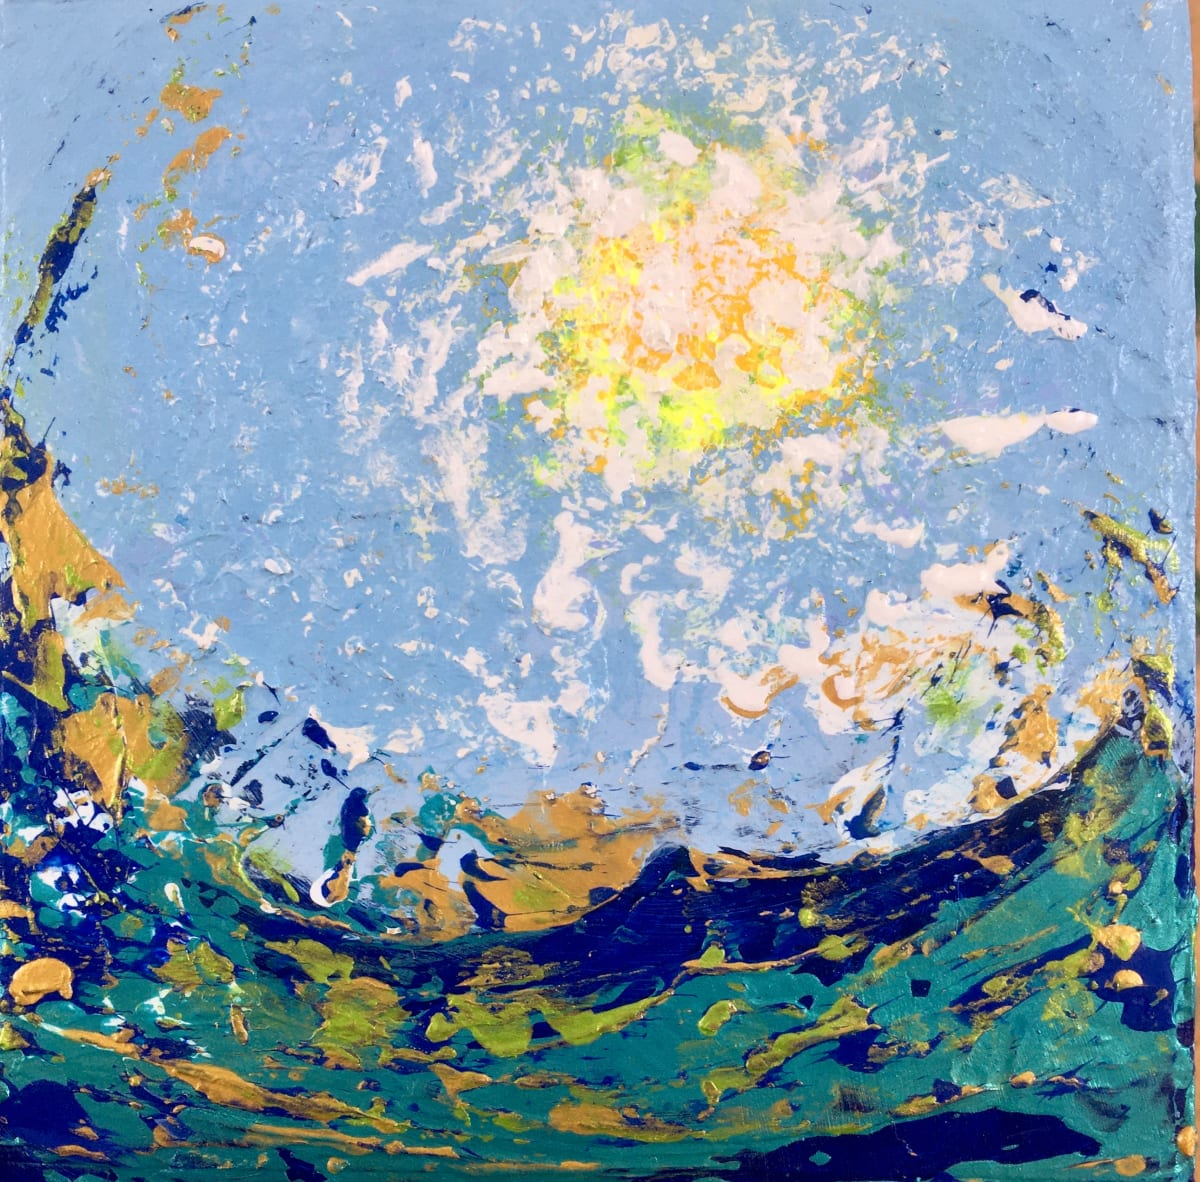 Sun and Sea no.4 by Julea Boswell